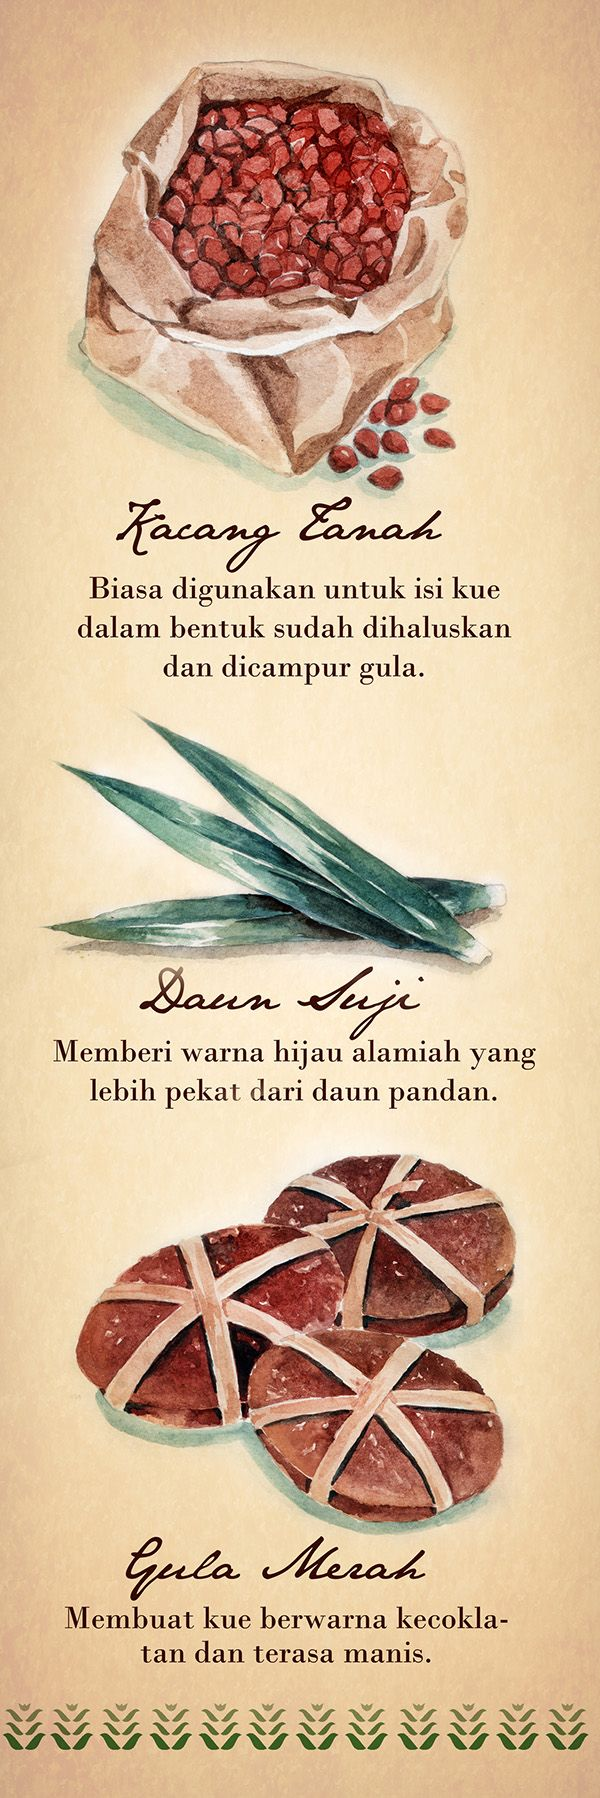 Watercolor illustrations of traditional Indonesian cakes